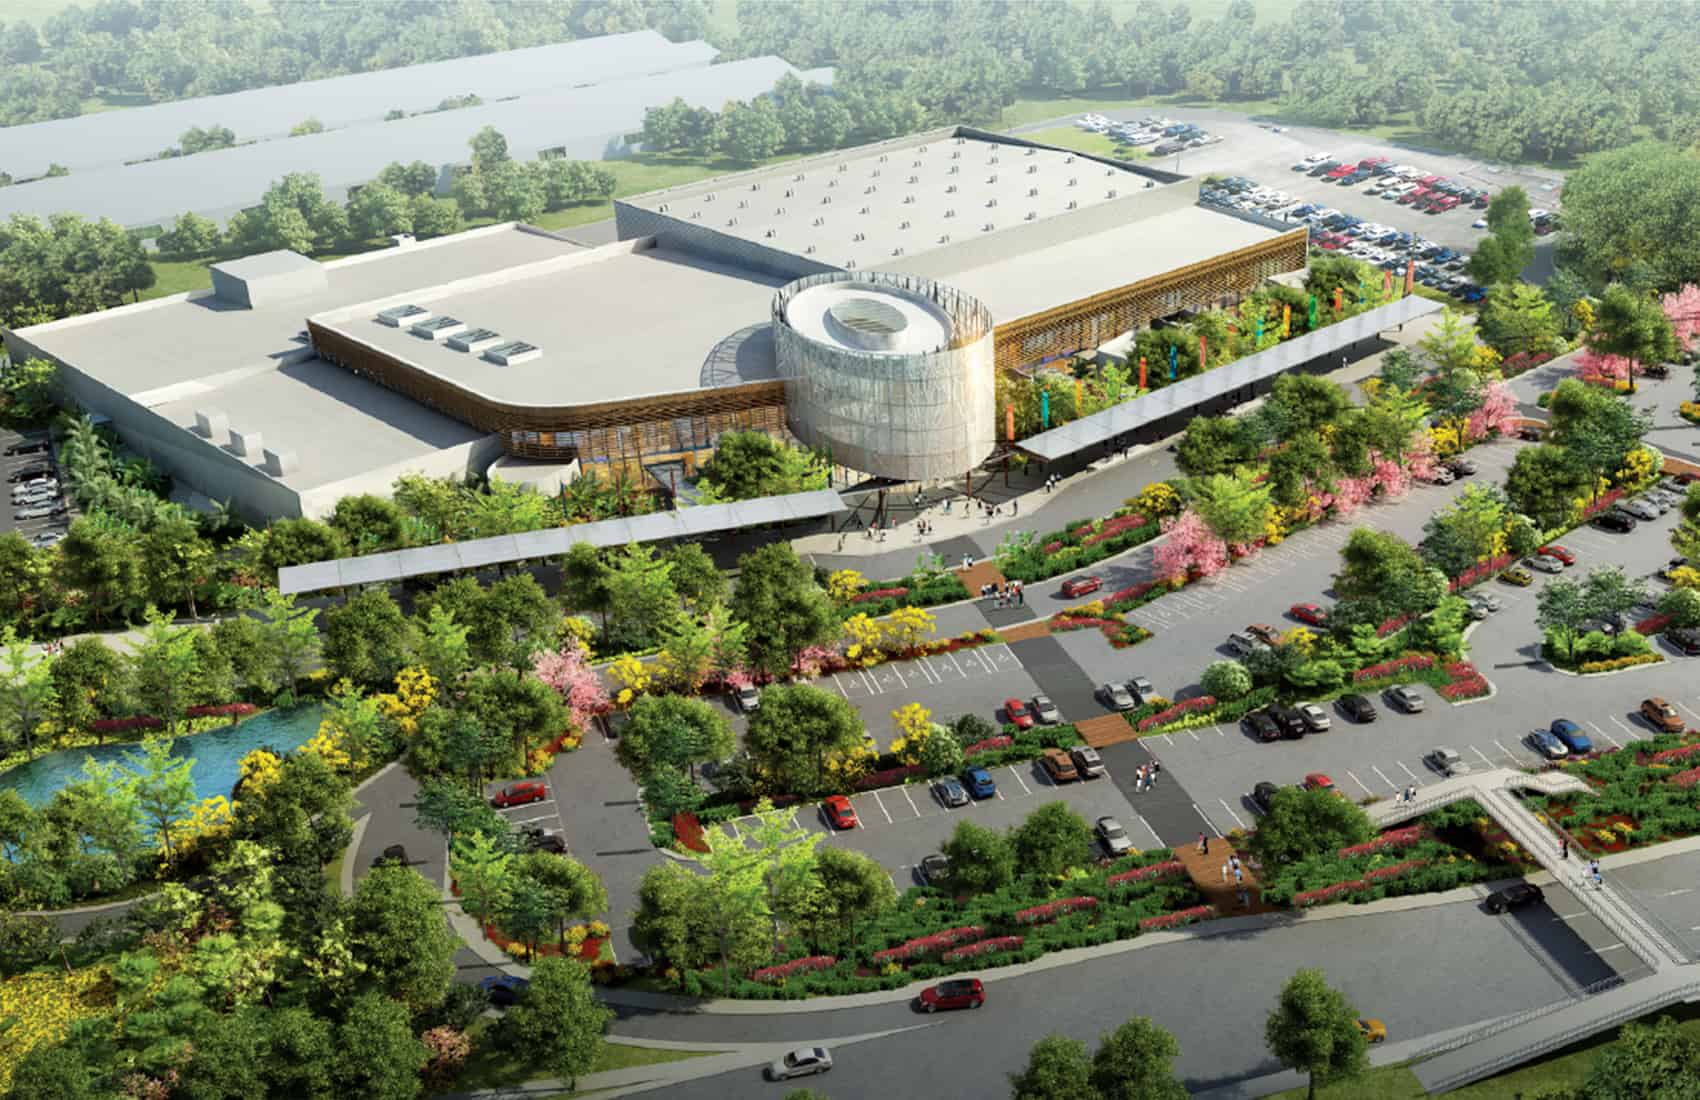 Render of the National Congress and Conventions Center